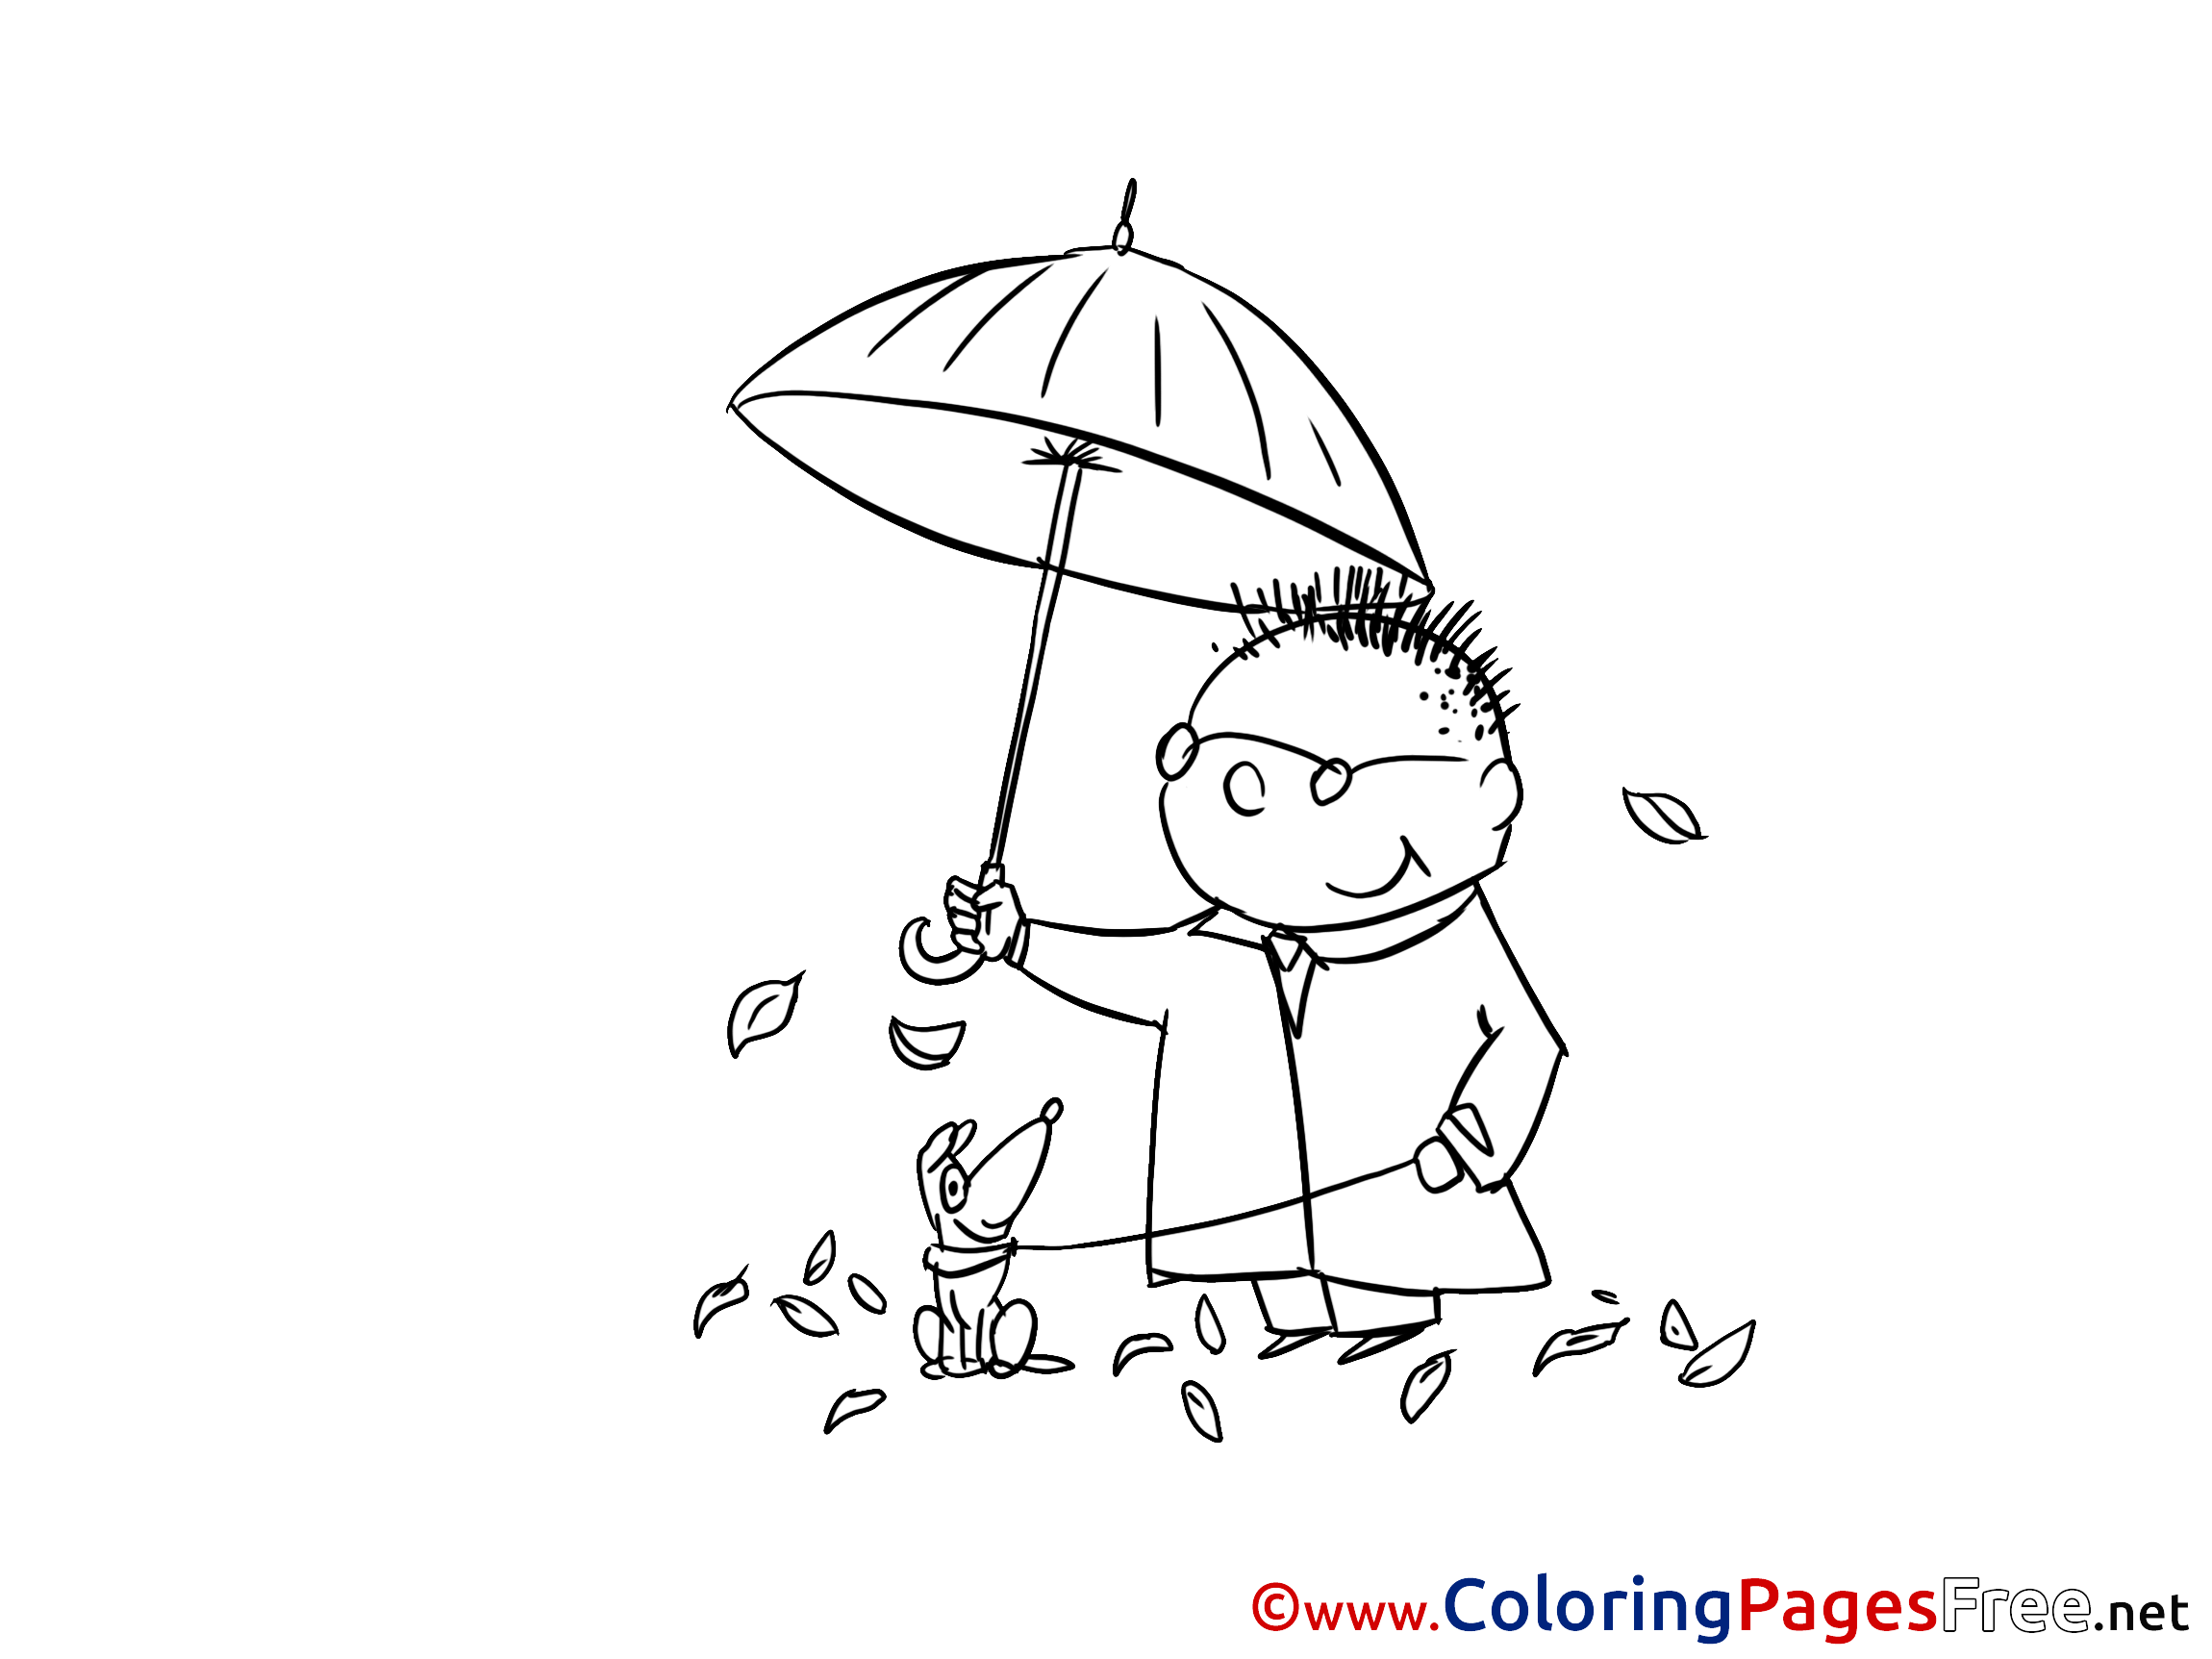 It is a picture of Printable Dog Colouring Pages for adorable dog